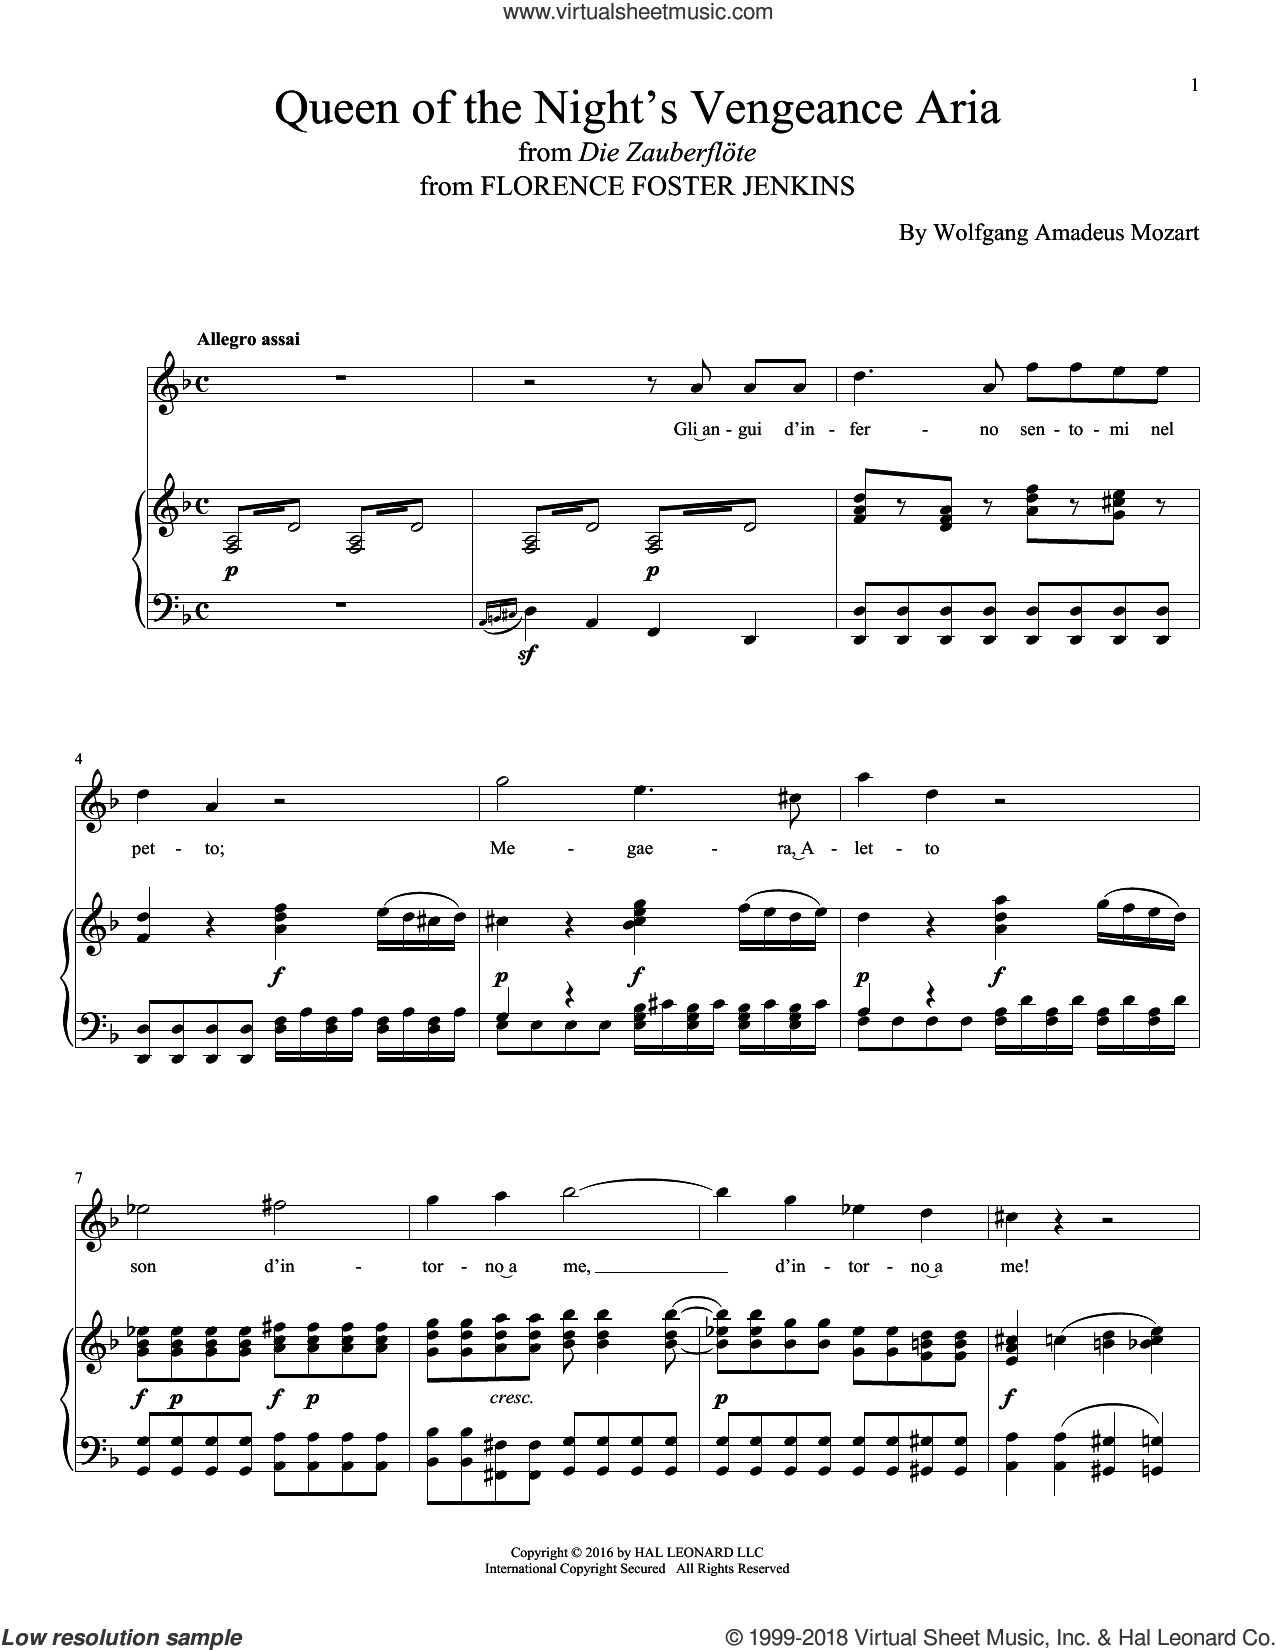 Queen Of The Night's Vengeance Aria sheet music for voice and piano by Wolfgang Amadeus Mozart and Alexandre Desplat. Score Image Preview.